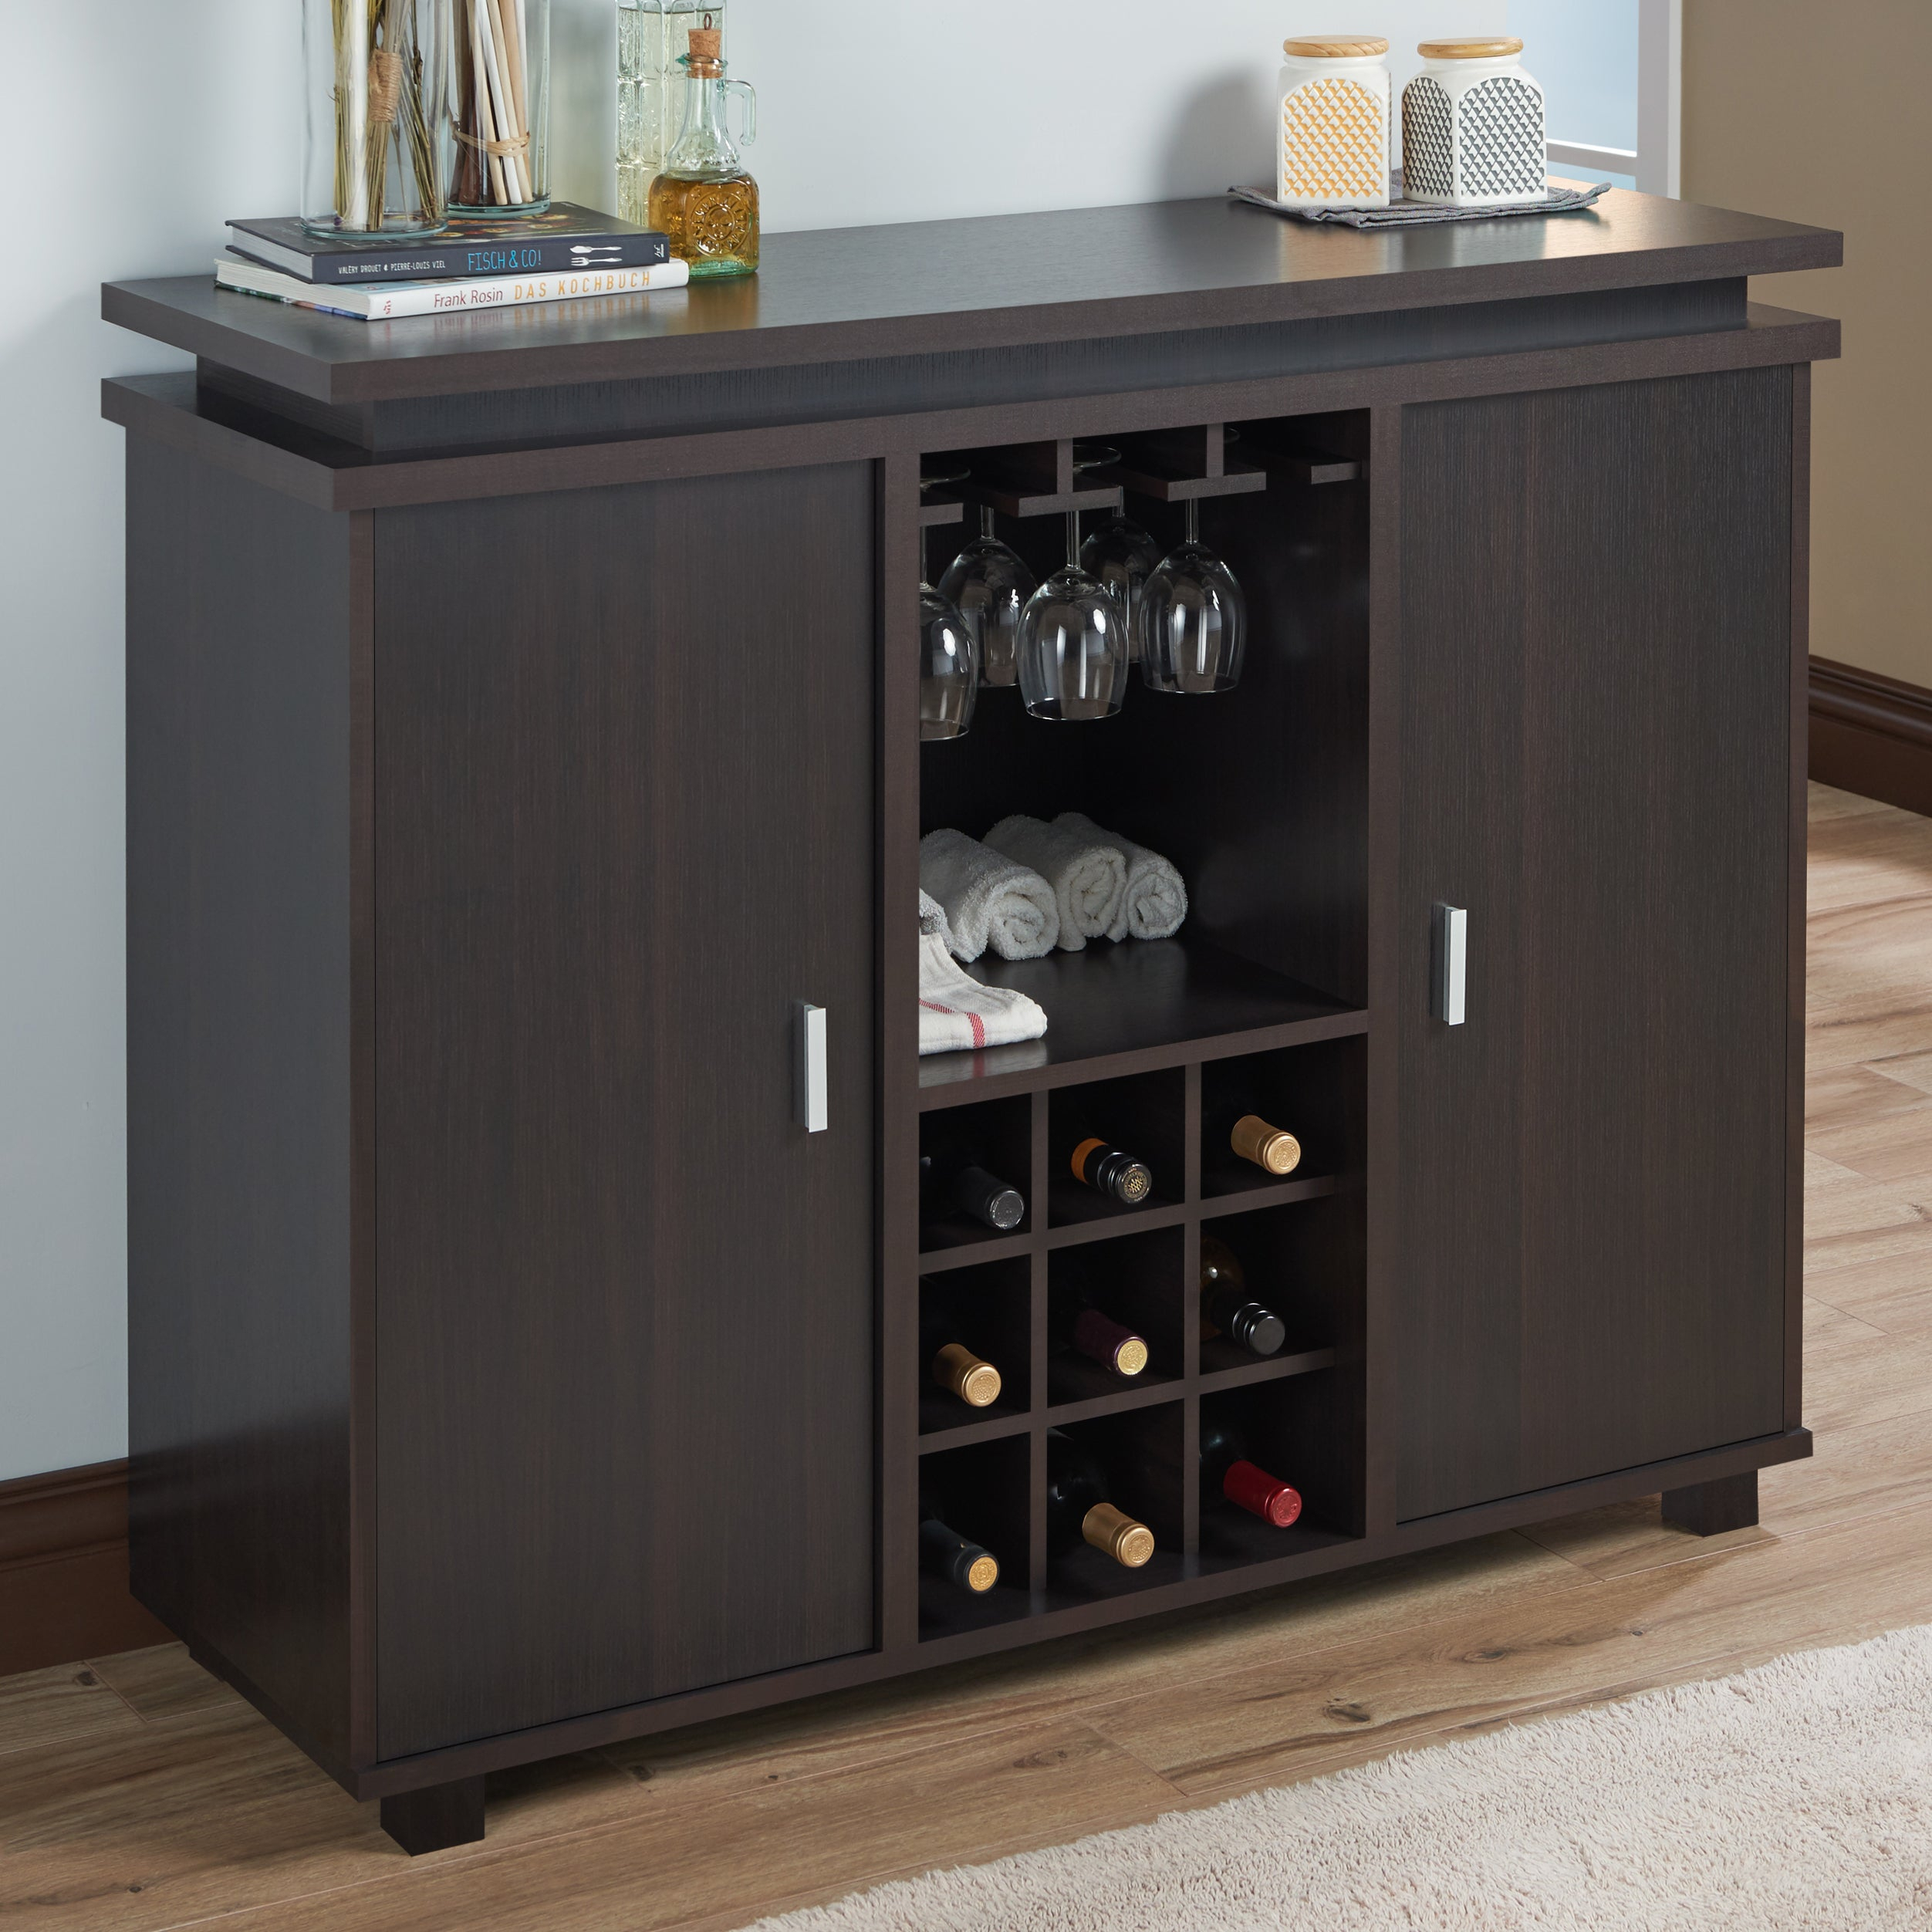 Furniture Of America Mirande Contemporary Espresso Dining Buffet With Wine Storage With Contemporary Espresso Dining Buffets (View 8 of 30)